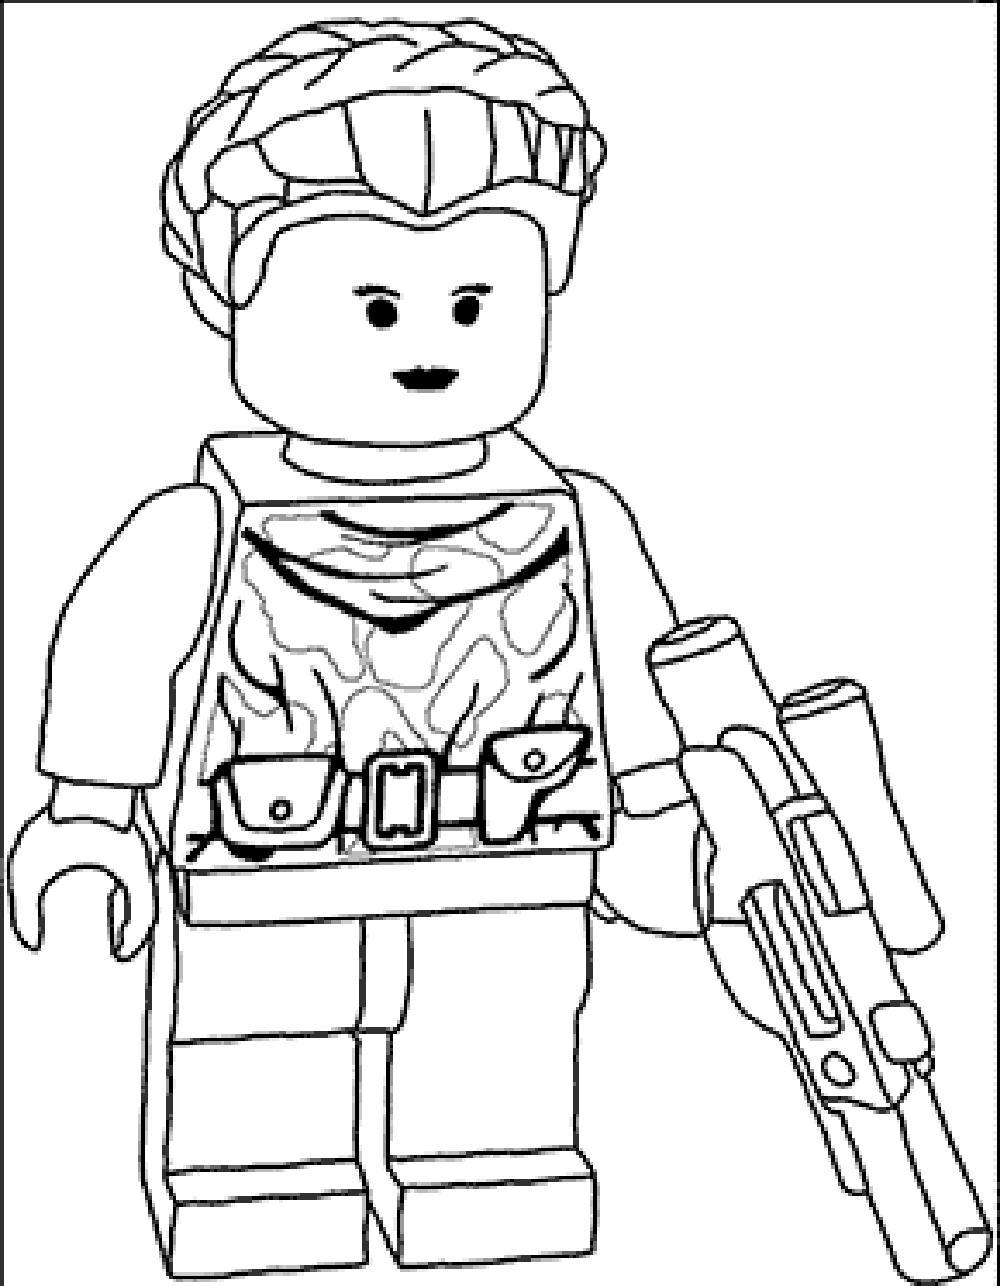 lego star wars coloring pages to print create your own lego coloring pages for kids print wars lego coloring pages to star